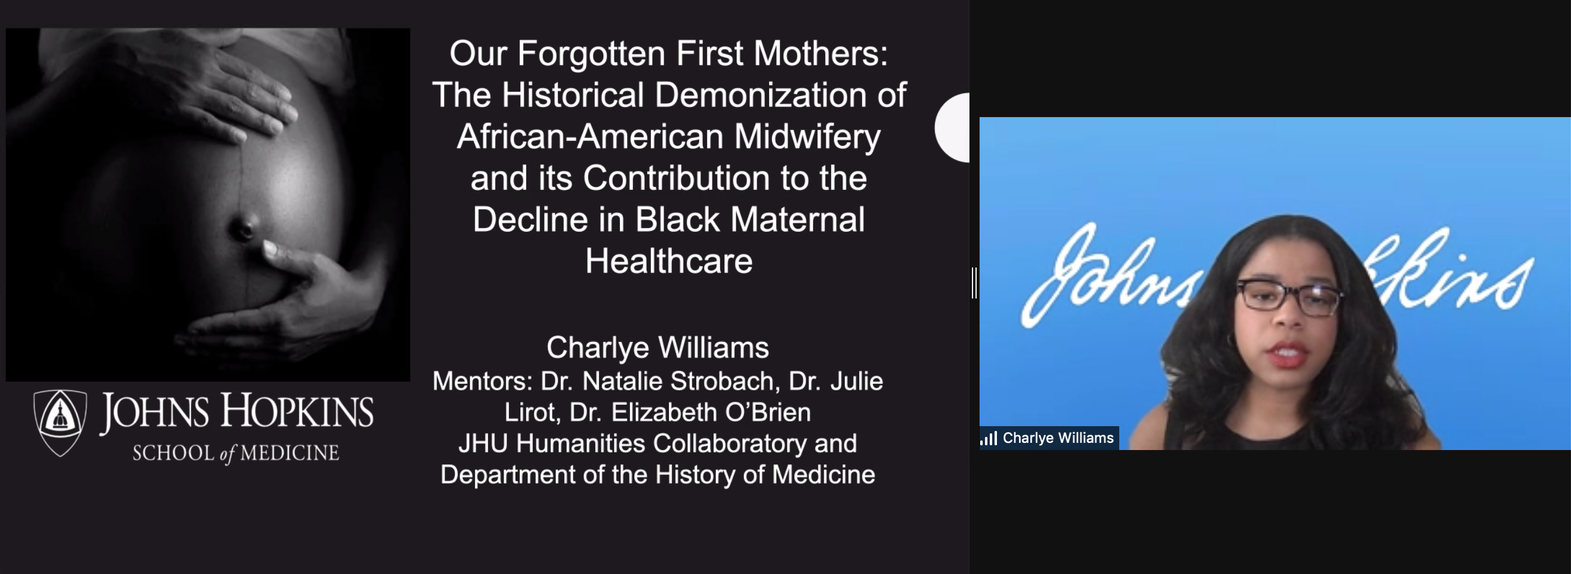 Charlye Williams Presentation Screenshot - Our Forgotten First Mothers